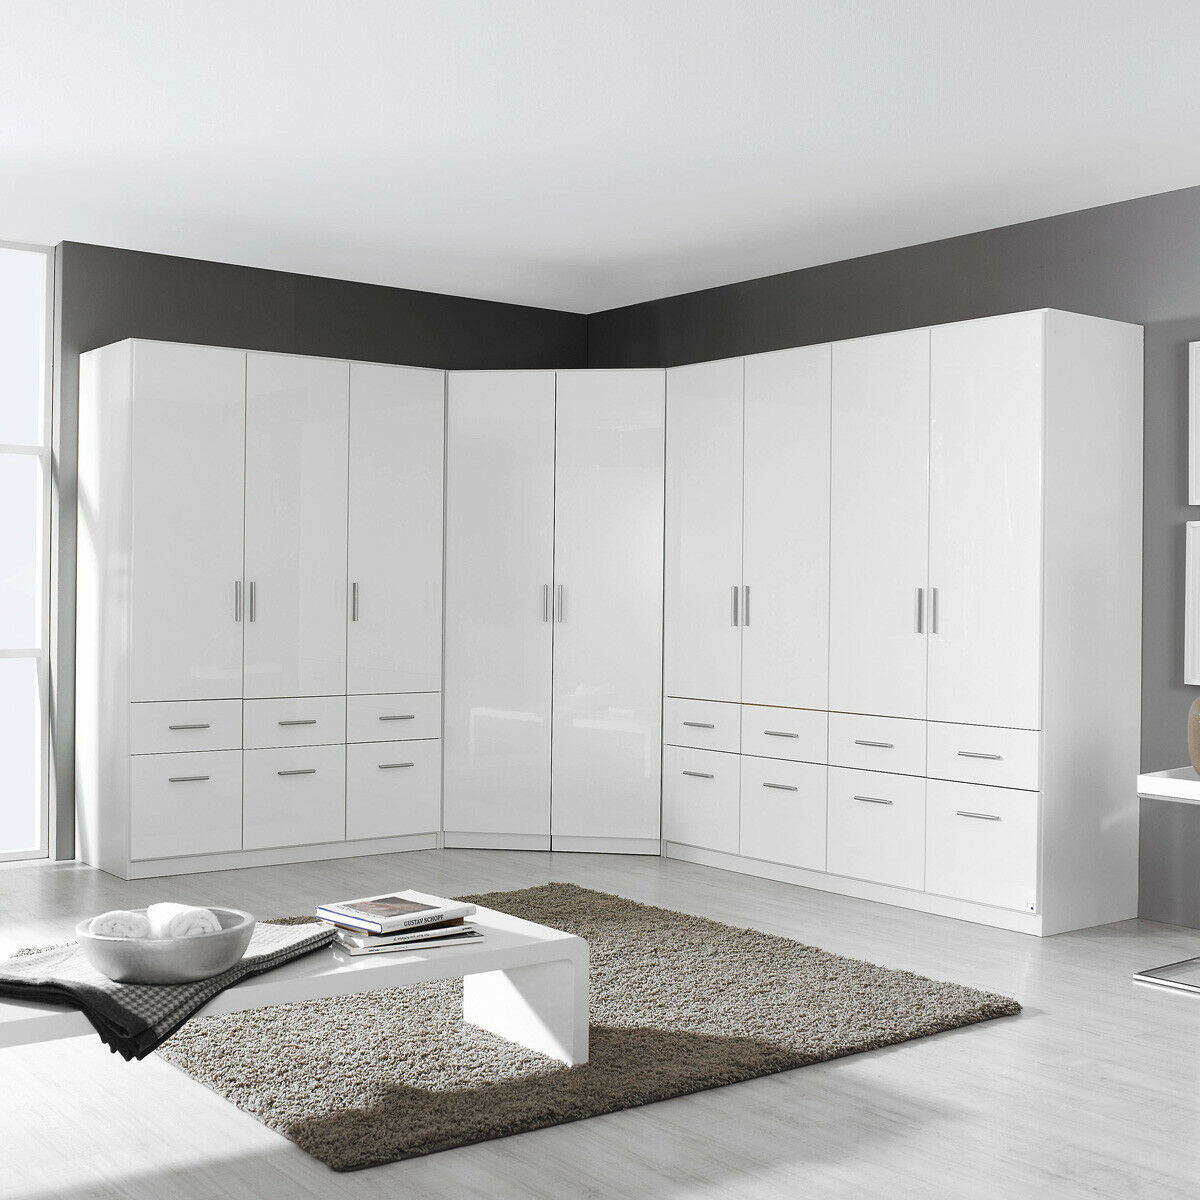 kleiderschrank kombination celle schrank dreht renschrank in wei hochglanz eur 949 95. Black Bedroom Furniture Sets. Home Design Ideas